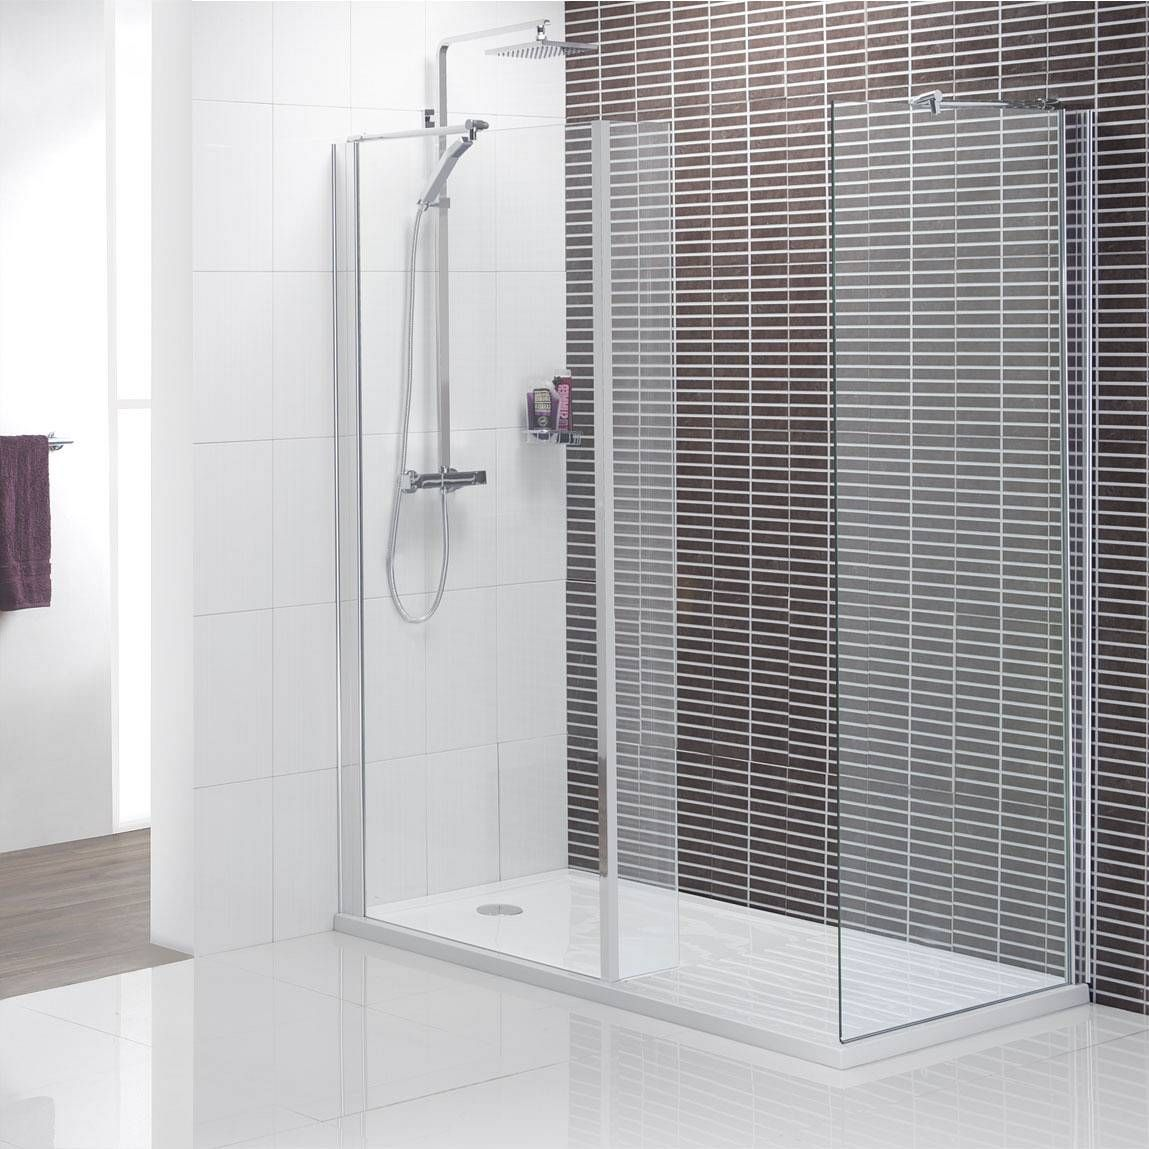 Image detail for Minimalist Walk in Shower Pack 1400 x 900 now